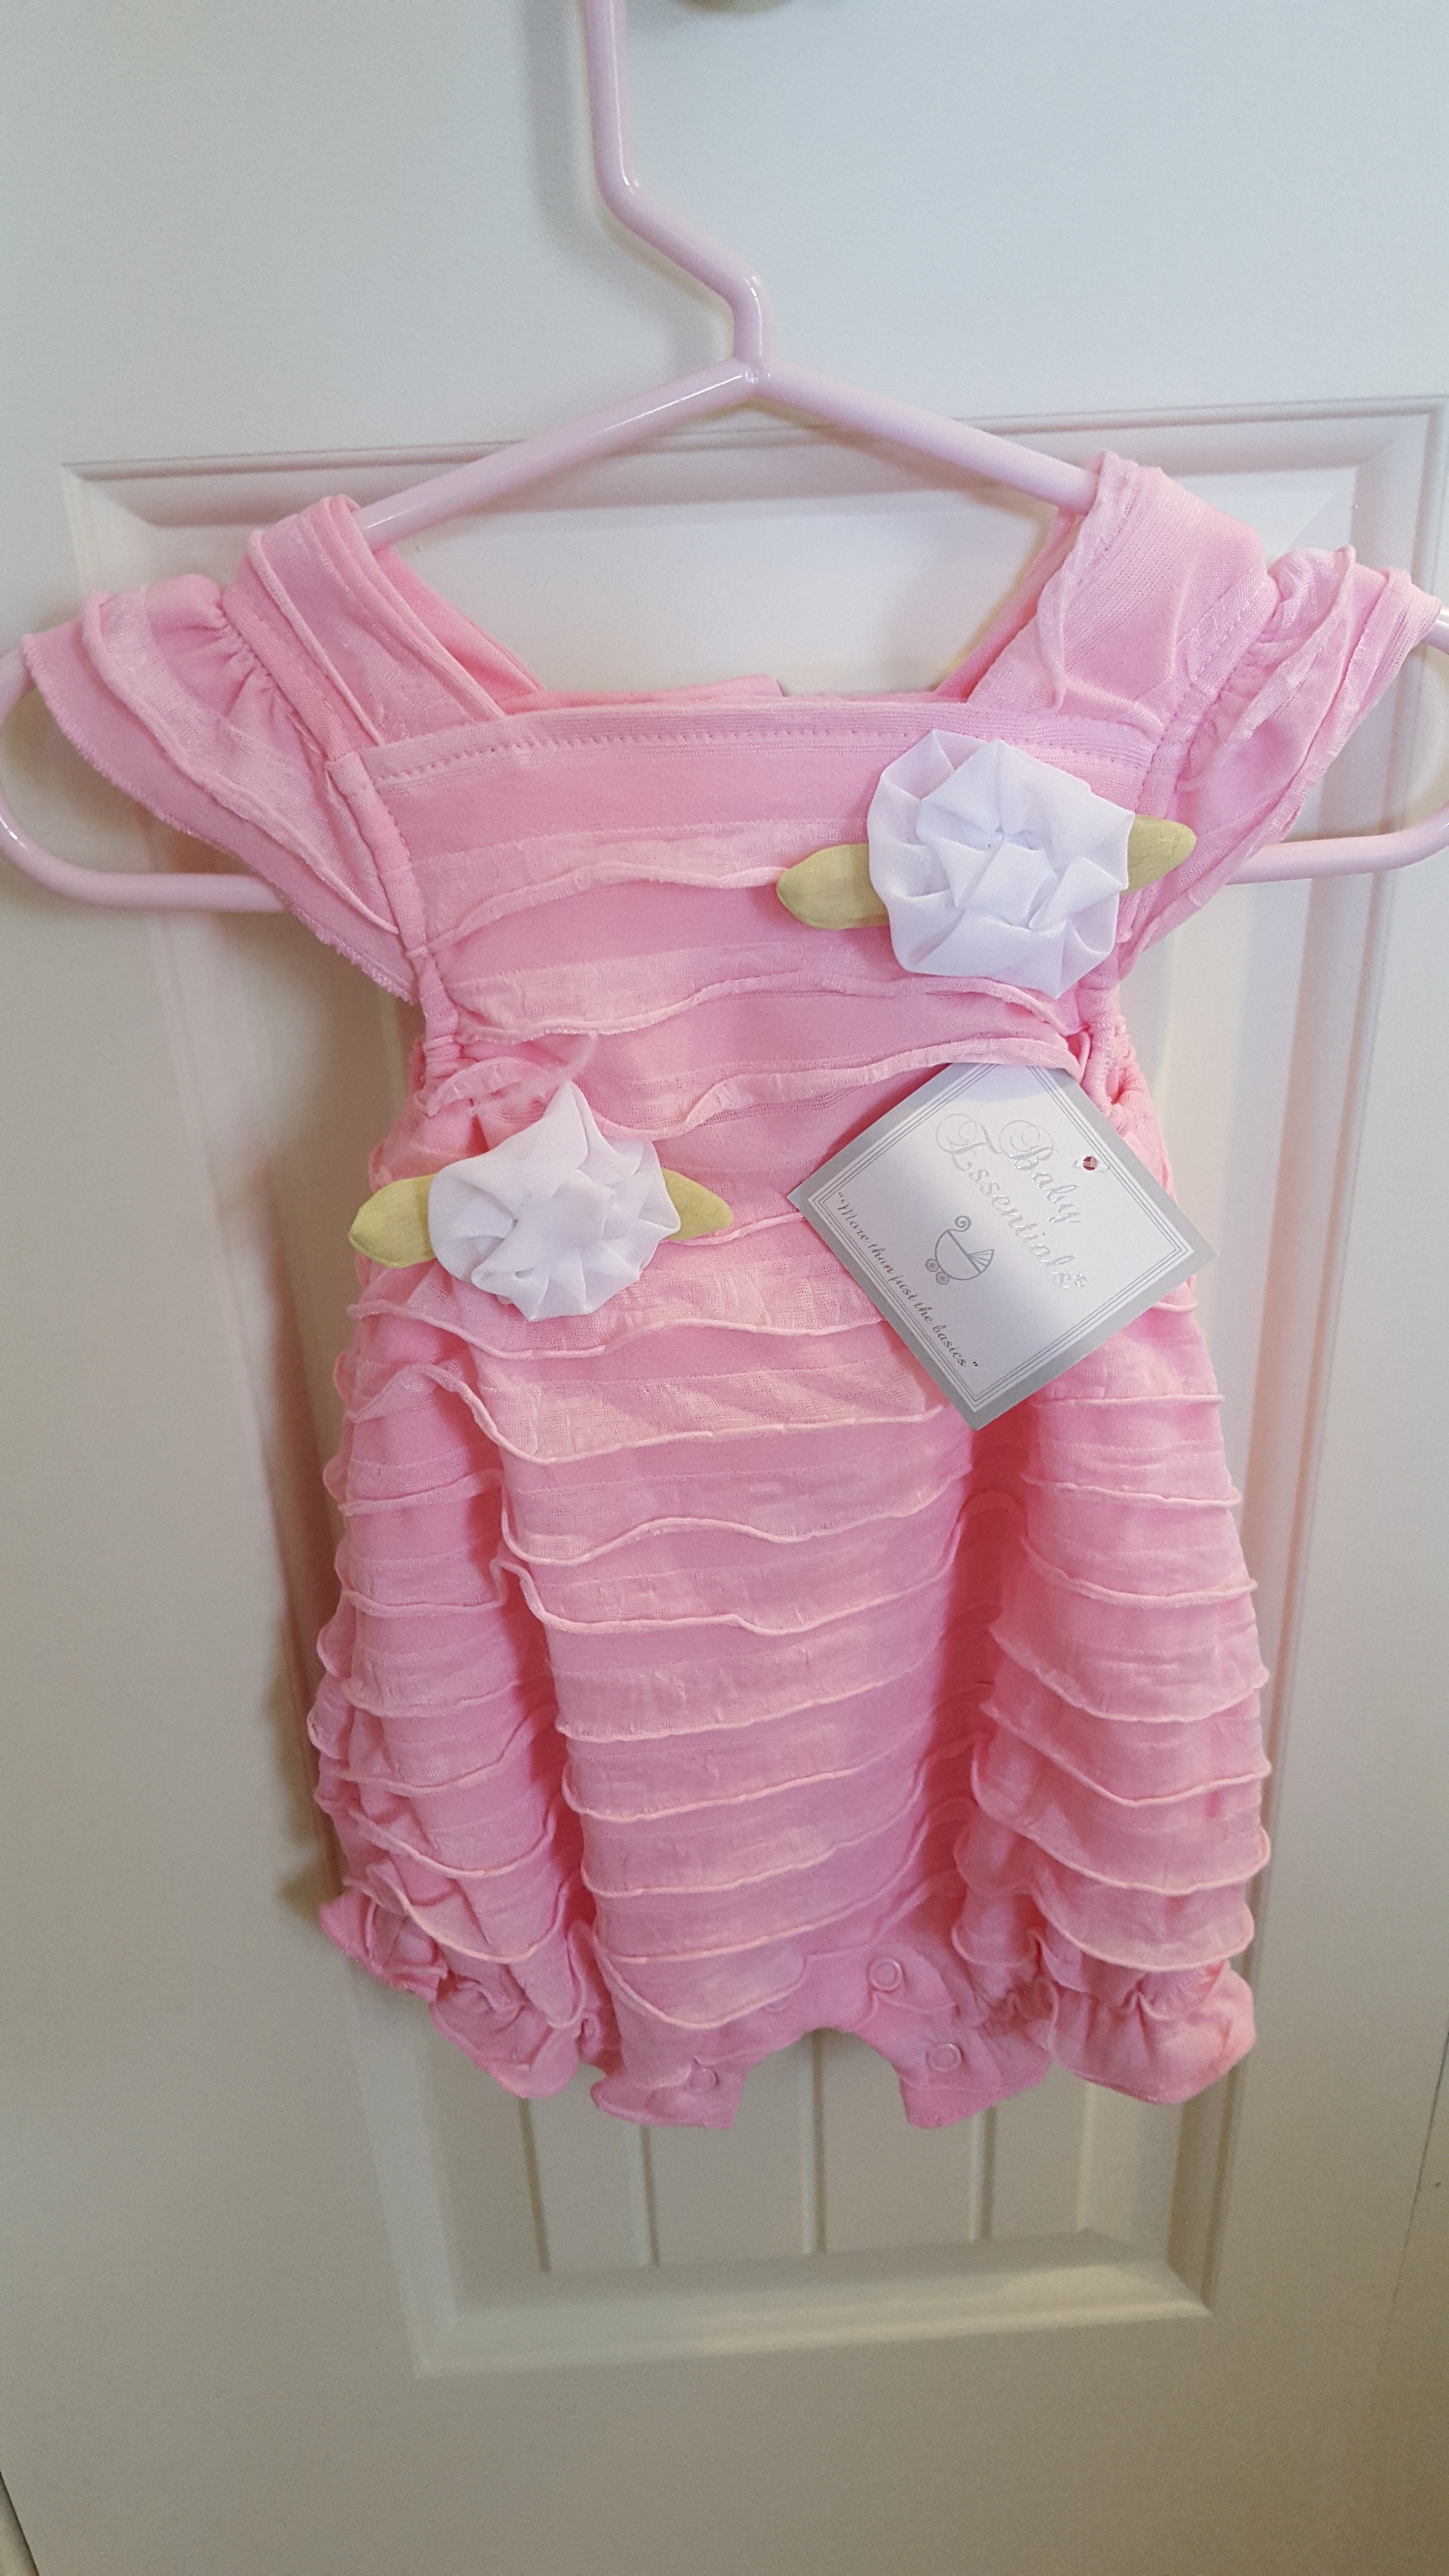 On sale newborn girl clothing and accessories at Gymboree. Find our best prices on cute baby girl clothes and accessories in our sale section.